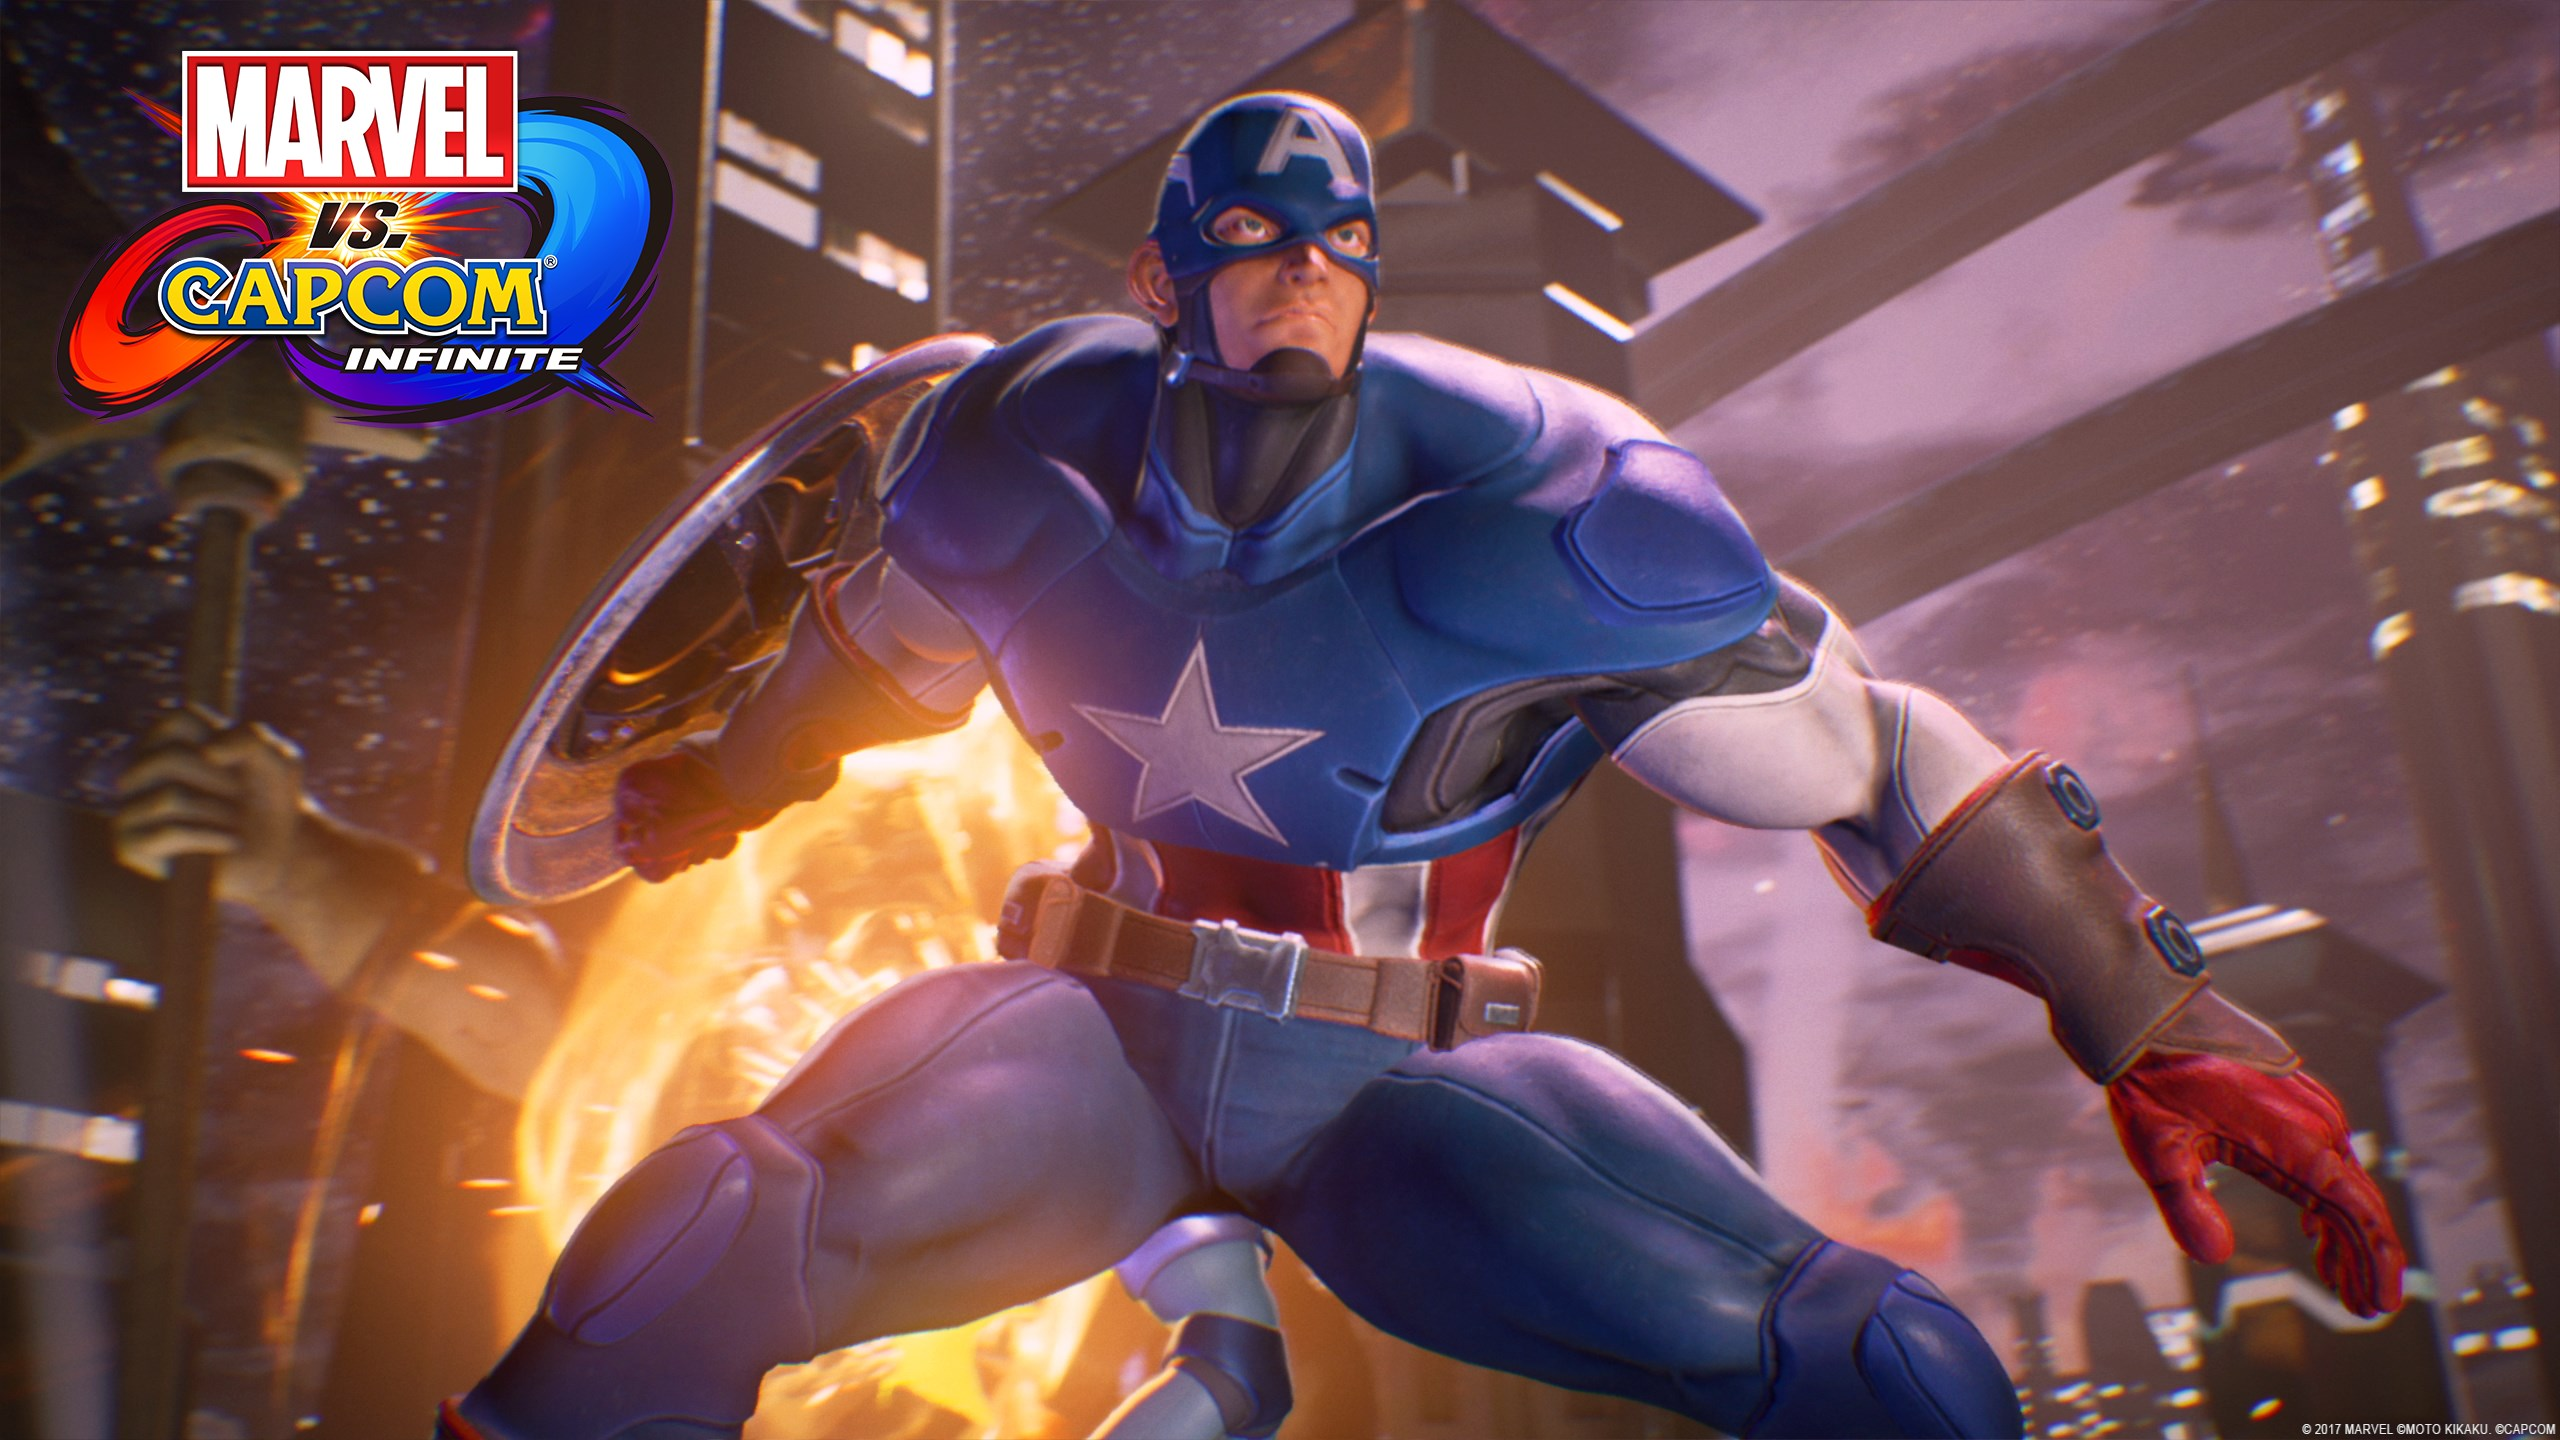 Marvel vs. Capcom: Infinite - Marvel vs. Capcom: Infinite 2K, Скриншот